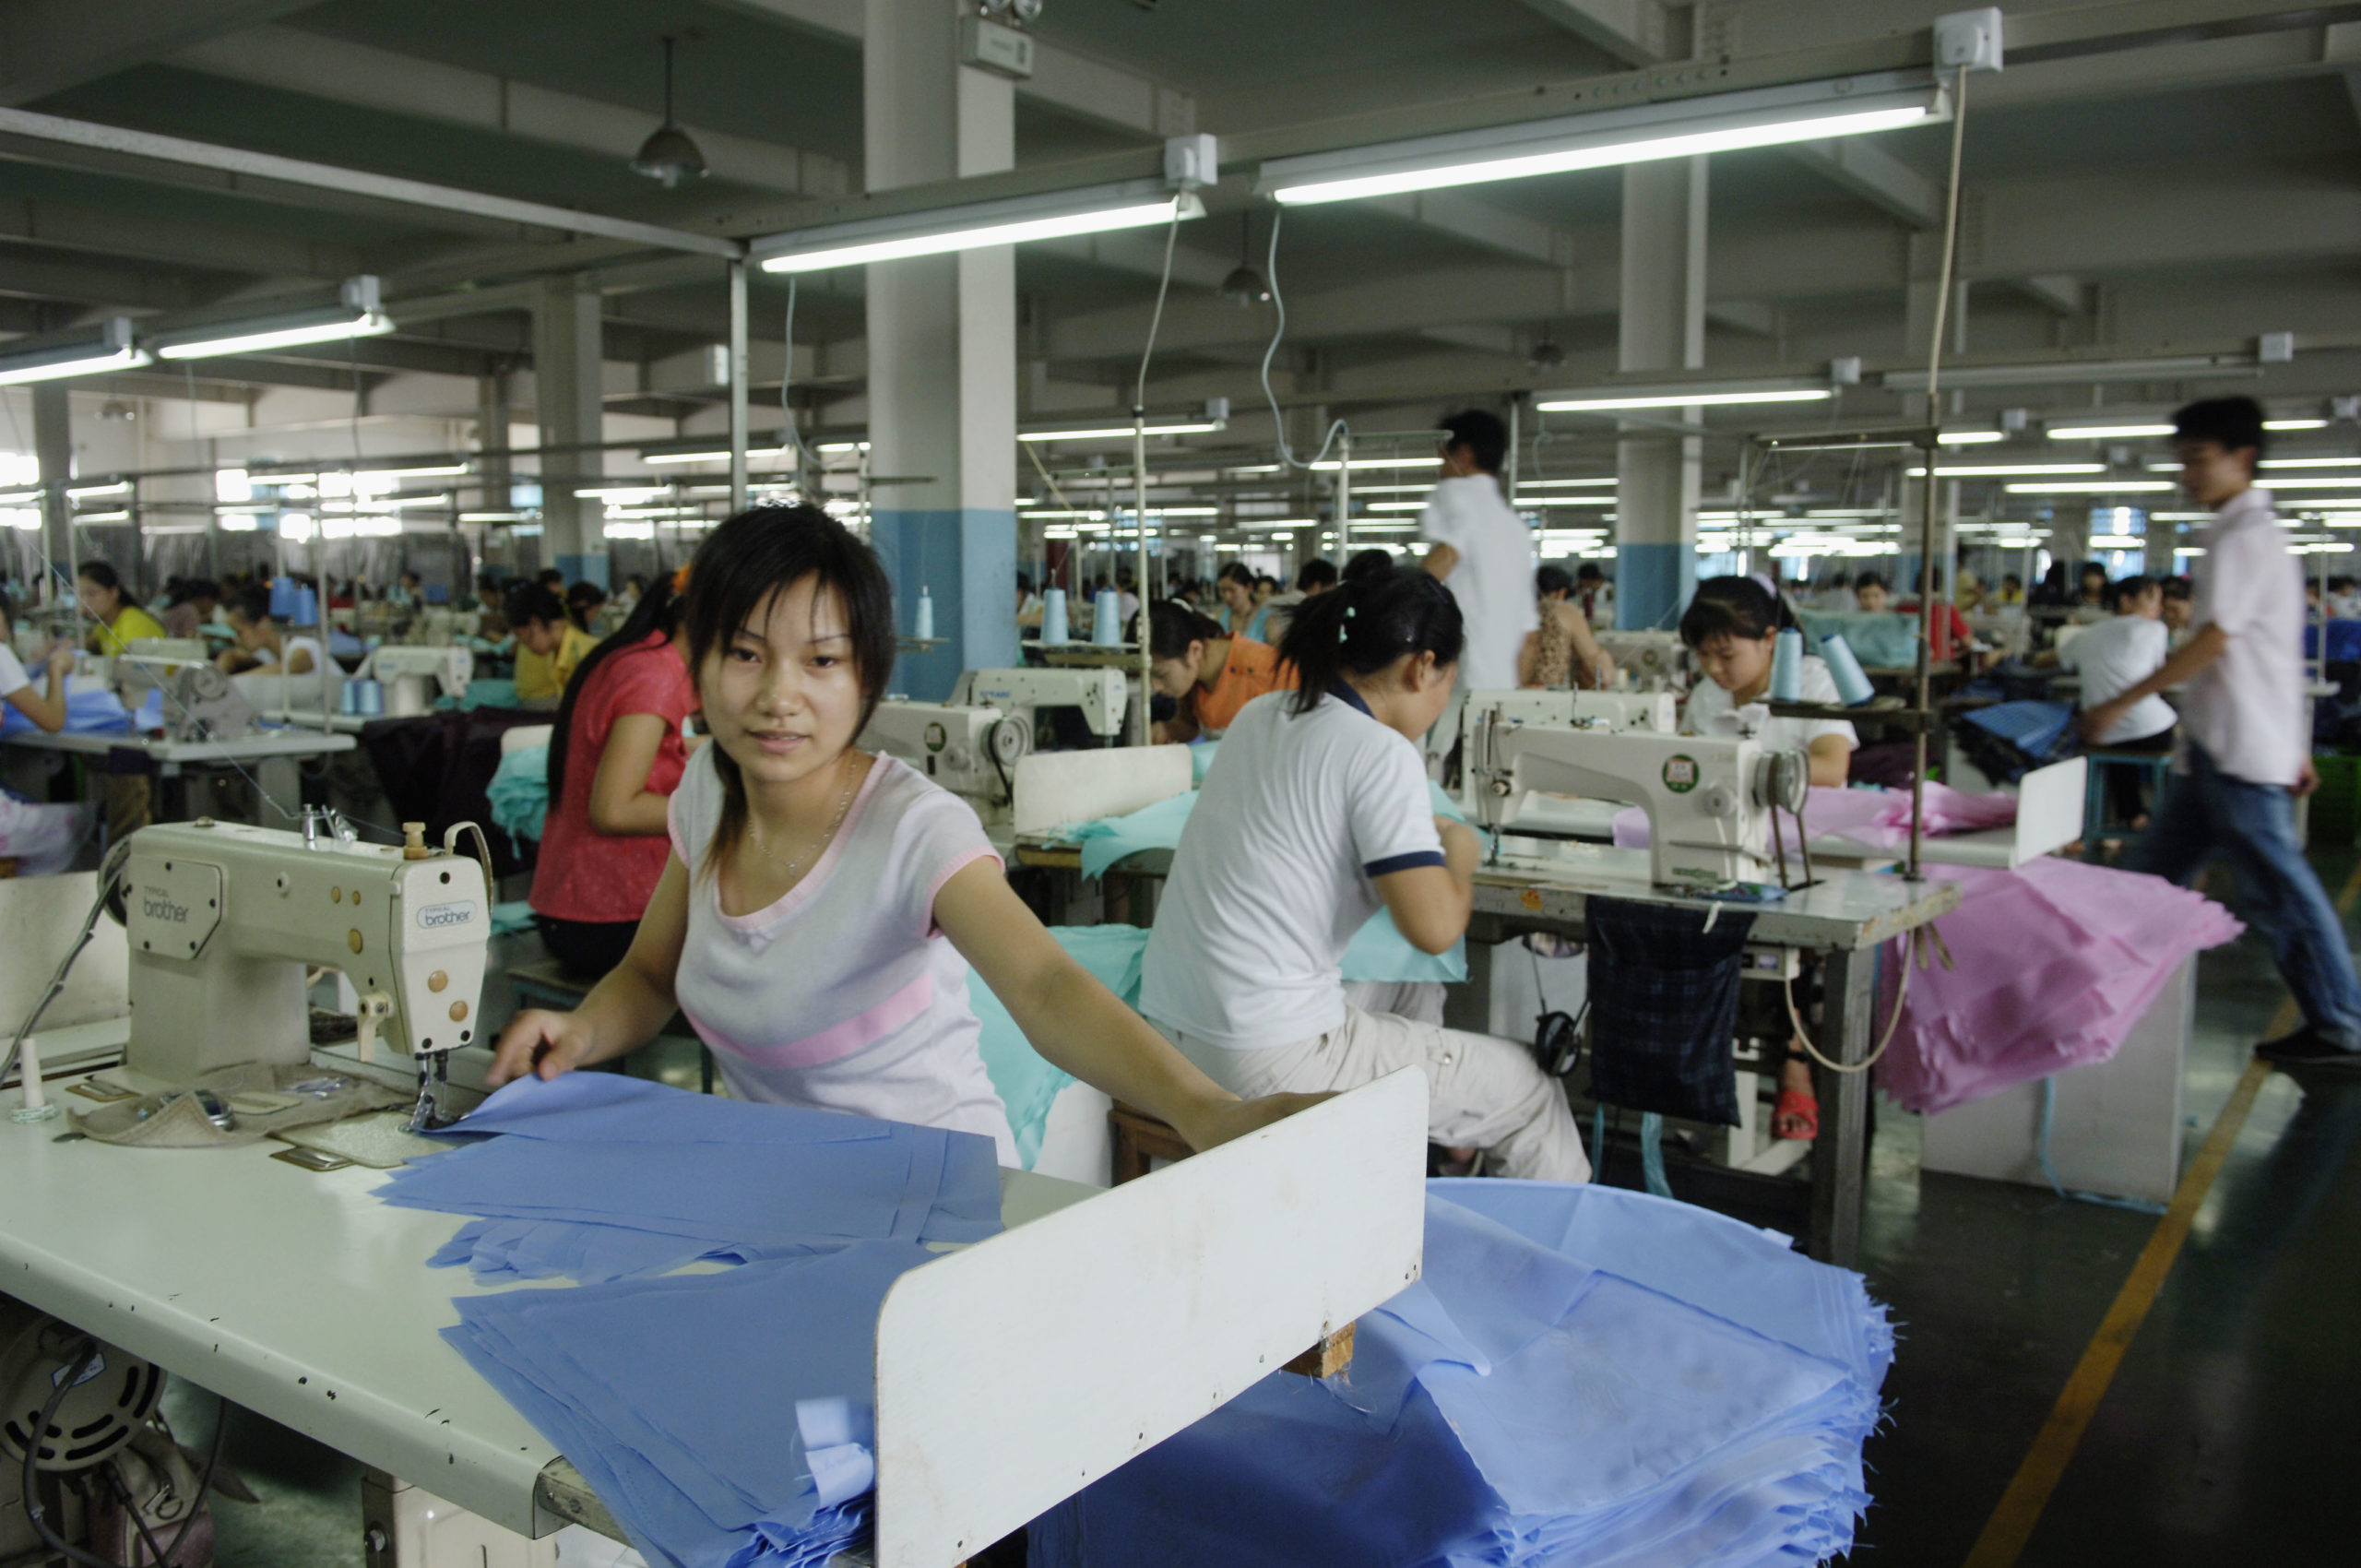 Seamstresses at Paradise Umbrella Group CO., the largest umbrella manufacturer in China-Hangzhou. © BetterWork